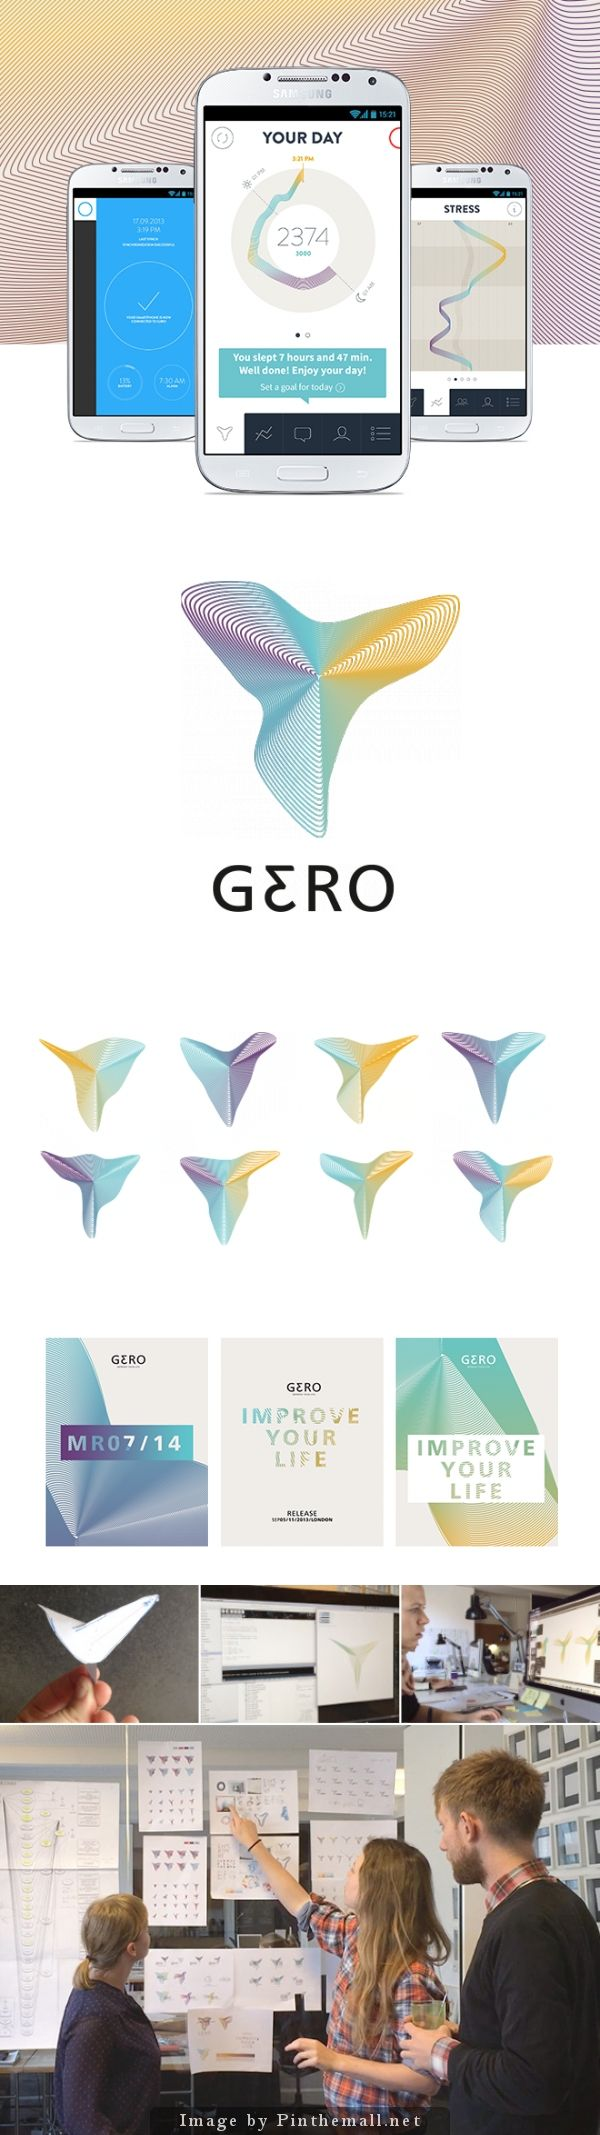 think moto – Flexible identity for GERO